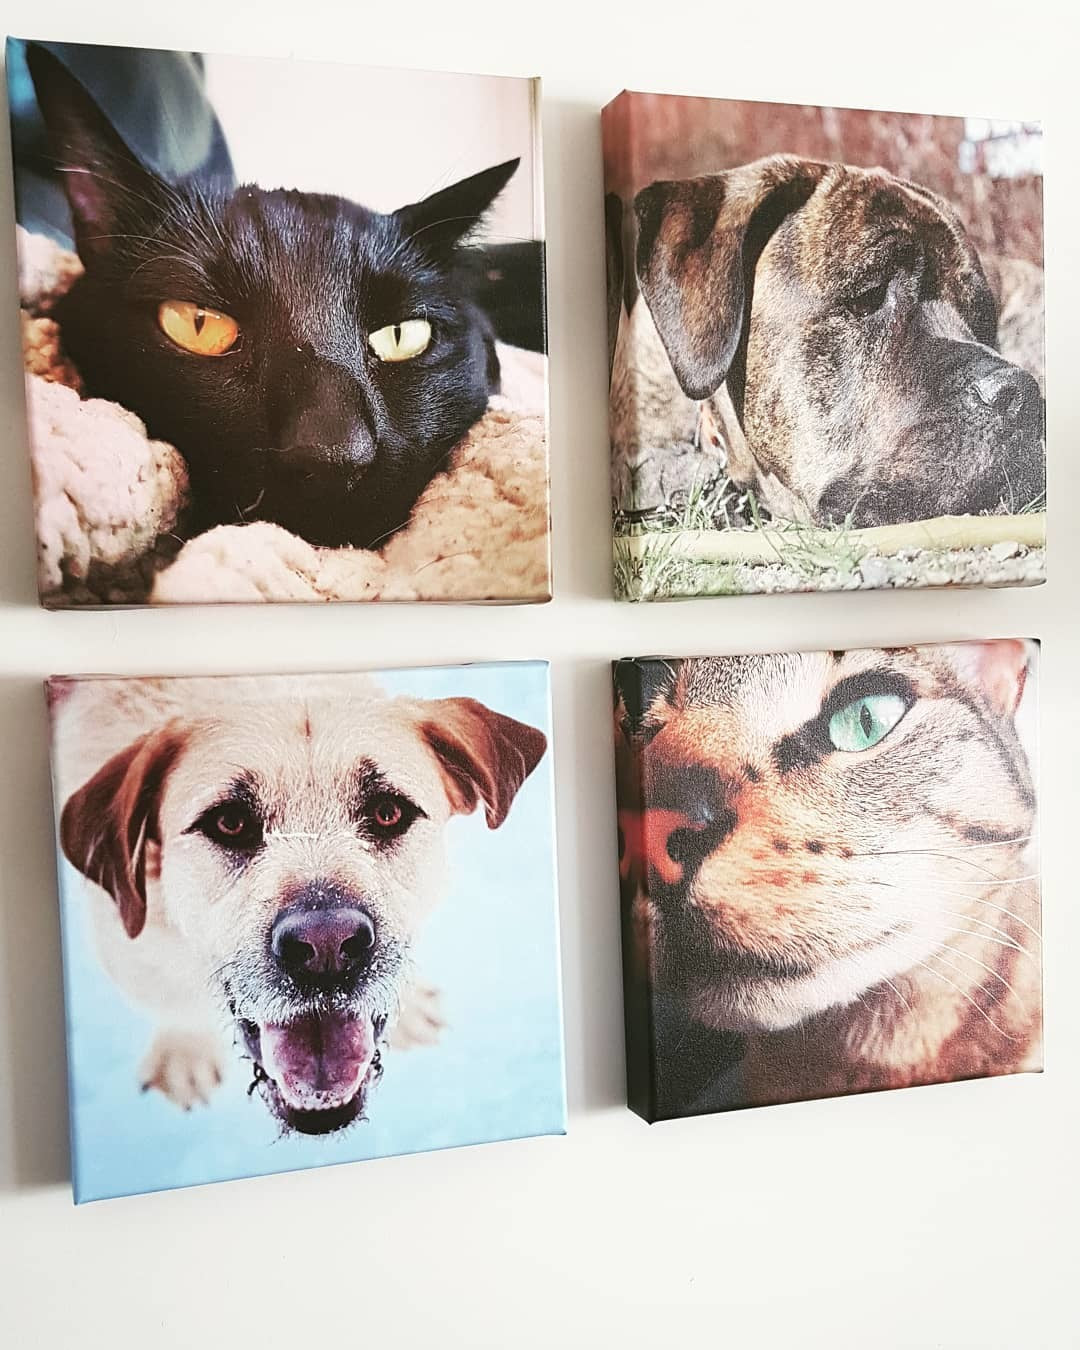 Gallery Wall of Pet Prints on Canvas